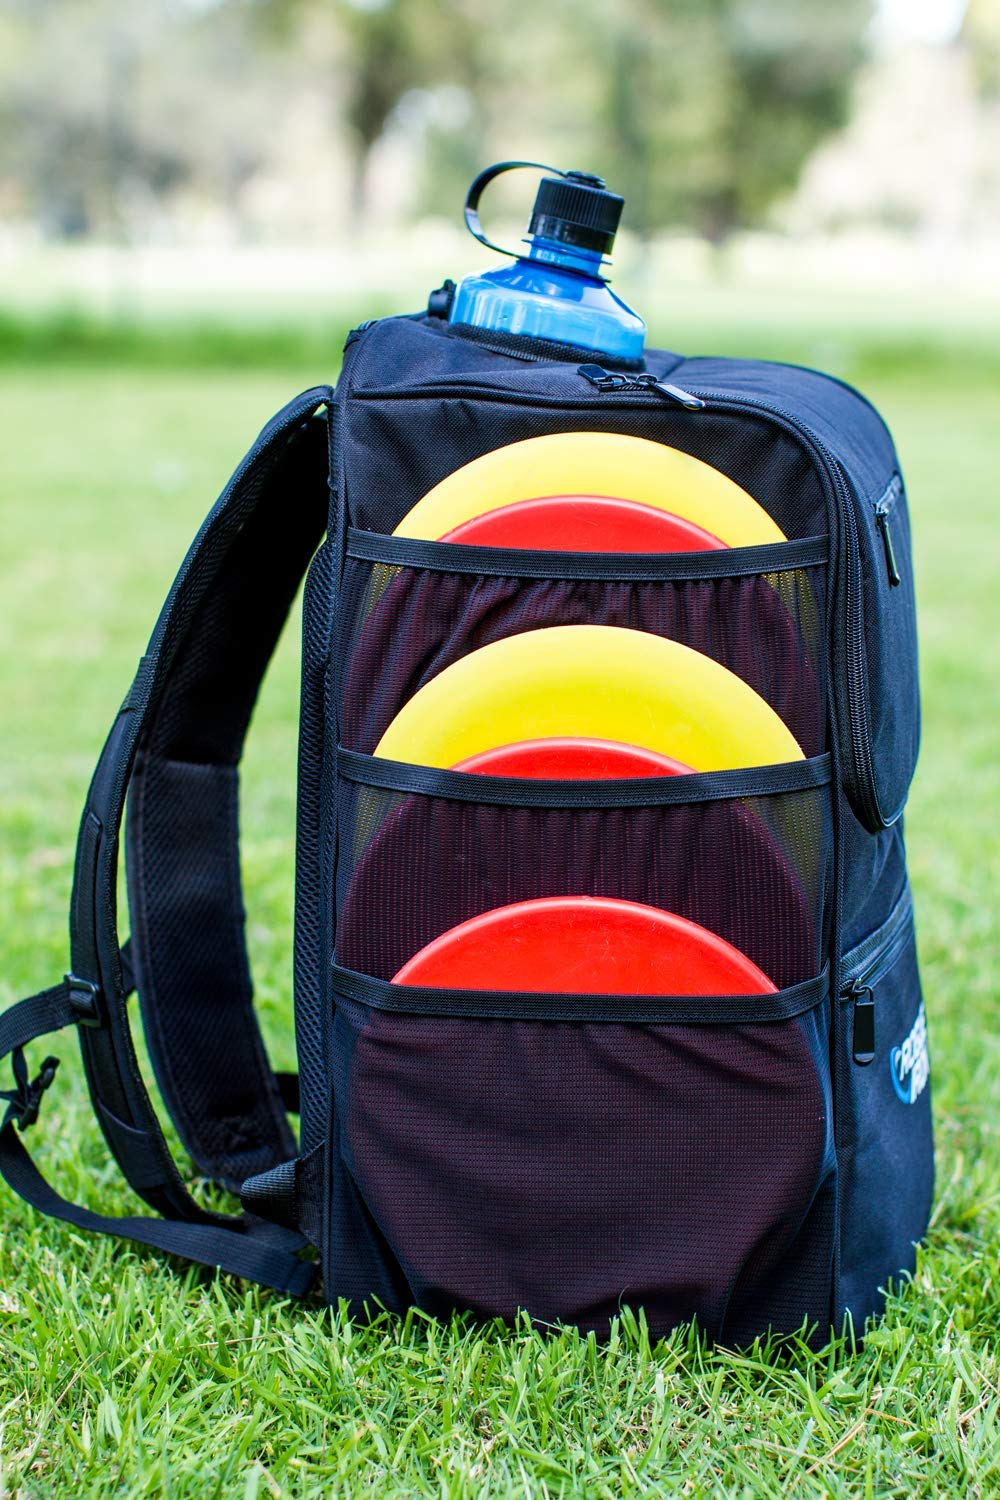 Rogue Iron Disk Golf Backpack & Cooler (Black) by Rogue Iron Sports (Image #6)